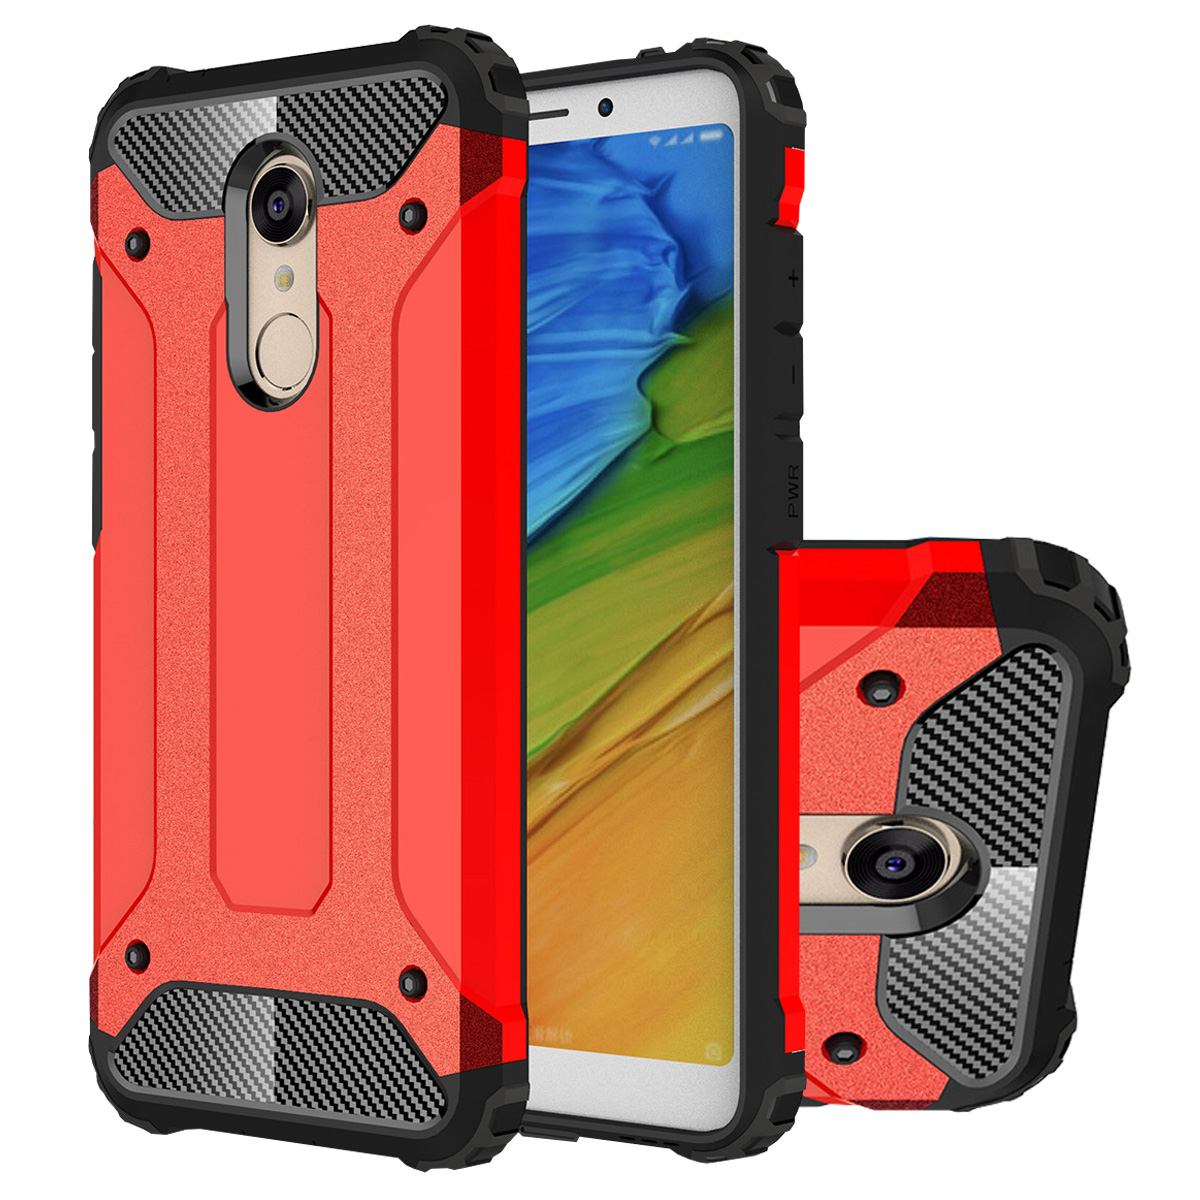 Redmi 5 Case, Mooncase Hybrid Armor Case Soft Silicone & Hard Plastic Defender Shockproof Protective Cover Shell for Xiaomi Redmi 5 Red - Walmart.com